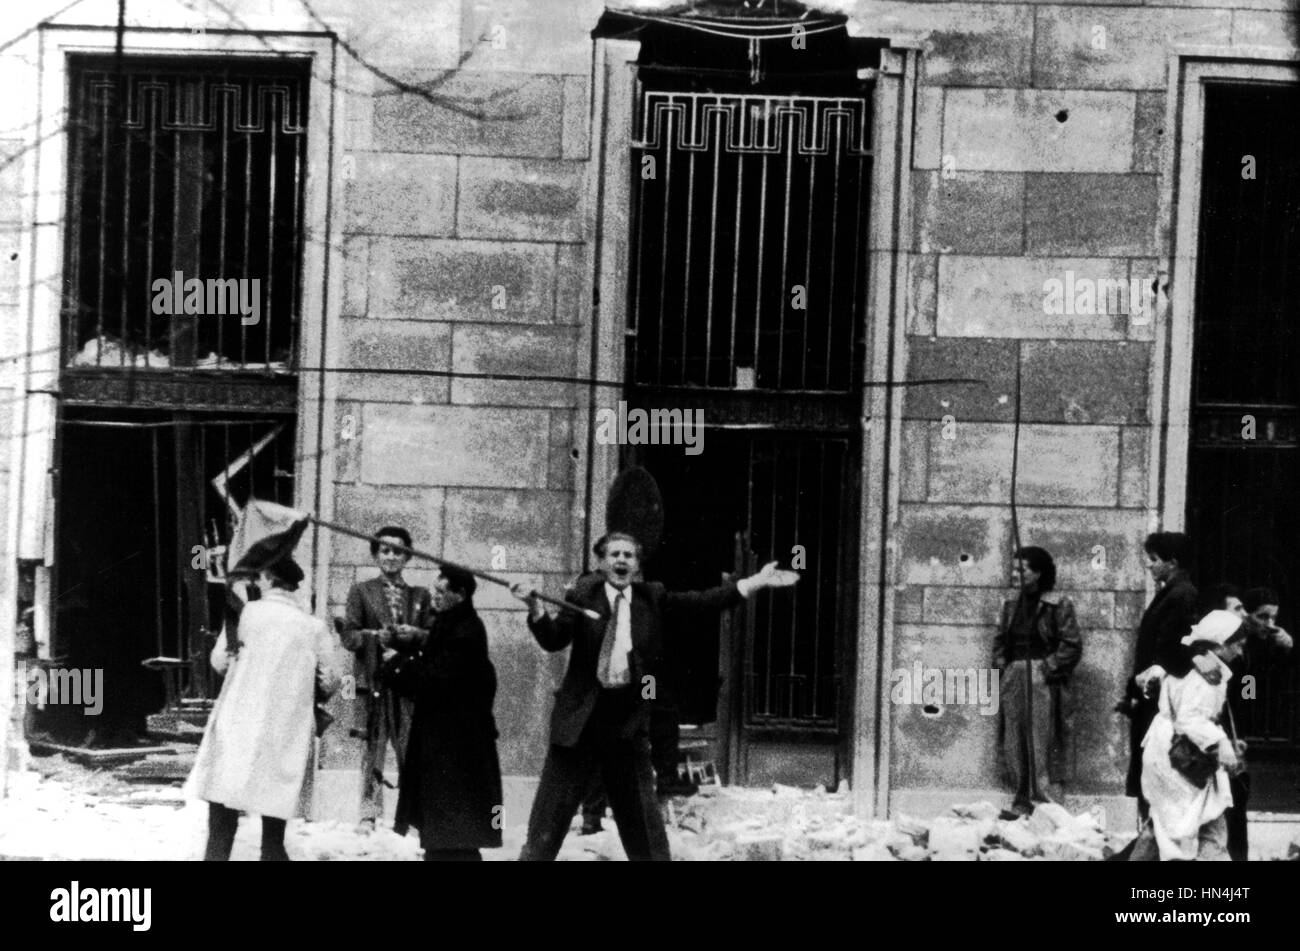 November 1956, Budapest, rebels assault the building behind the tank. The attack is a success, and a standard bearer Stock Photo